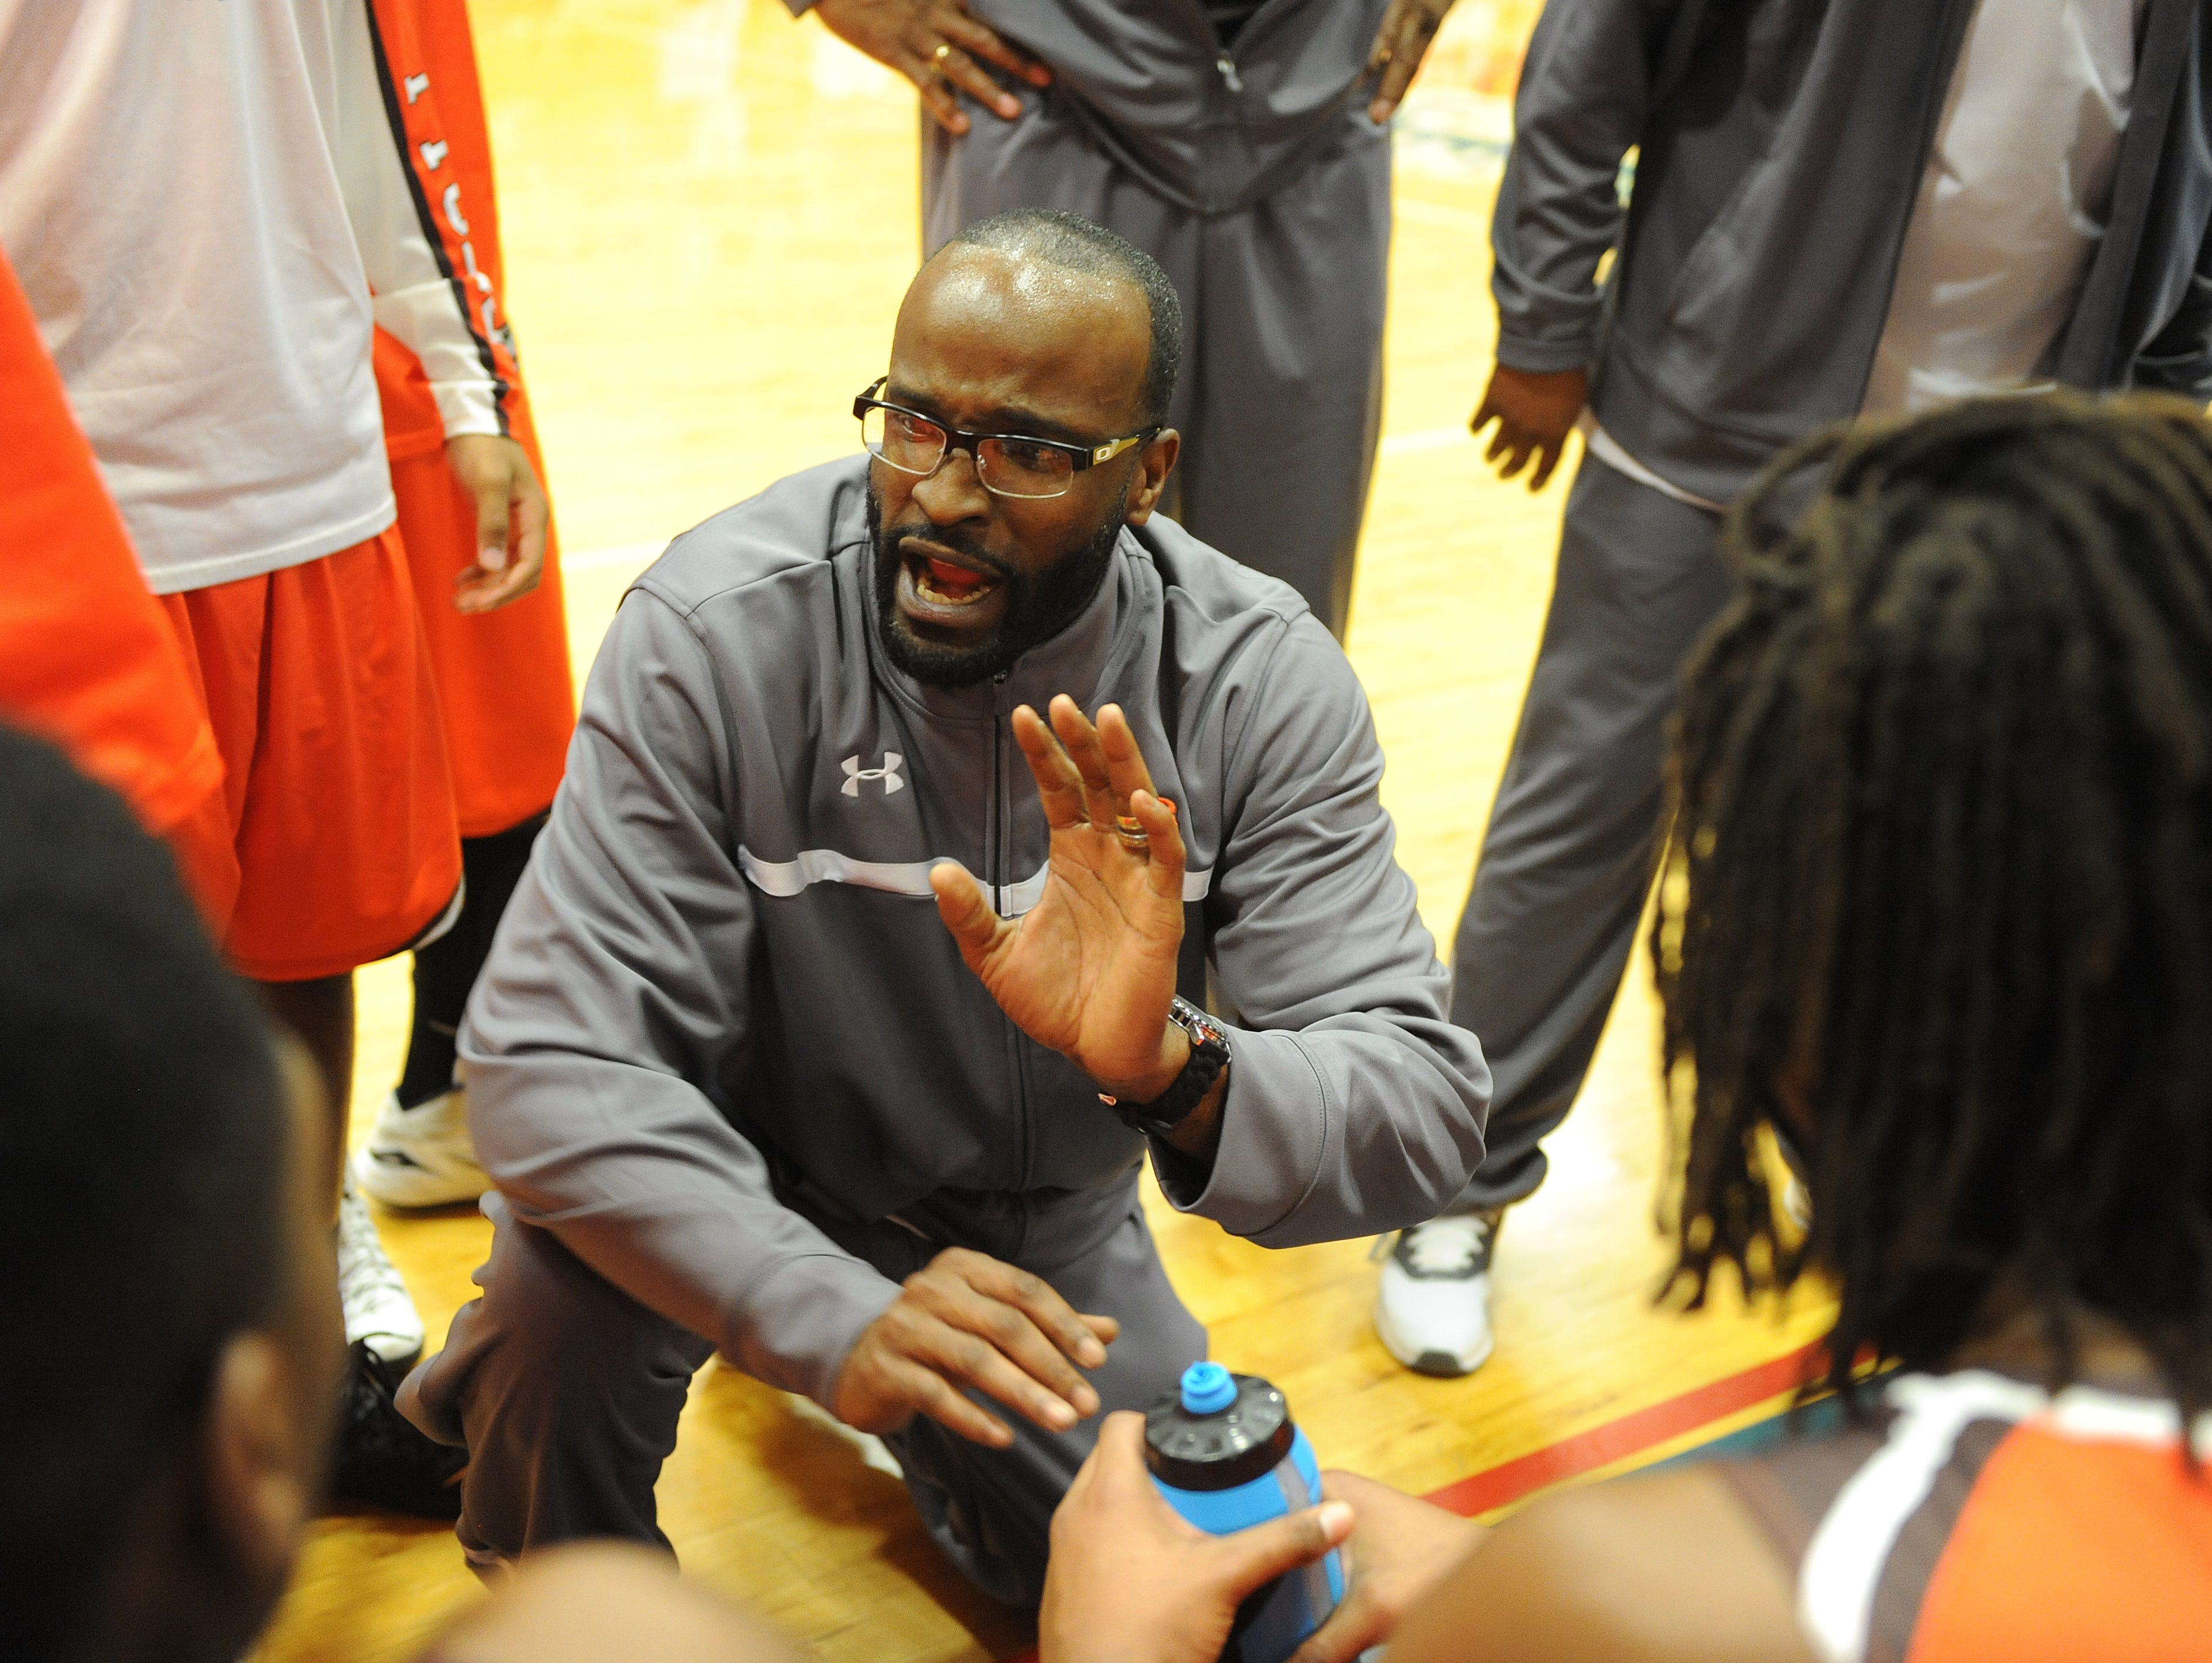 Mansfield Senior boys basketball coach JT Reese talks to his team during a timeout of last year's tournament game with Ashland. The Tygers open with Ontario Friday then travel to Wilington College Saturday at 4:30 p.m. to play Park Tudor, the two-time defending state champs from Indiana.